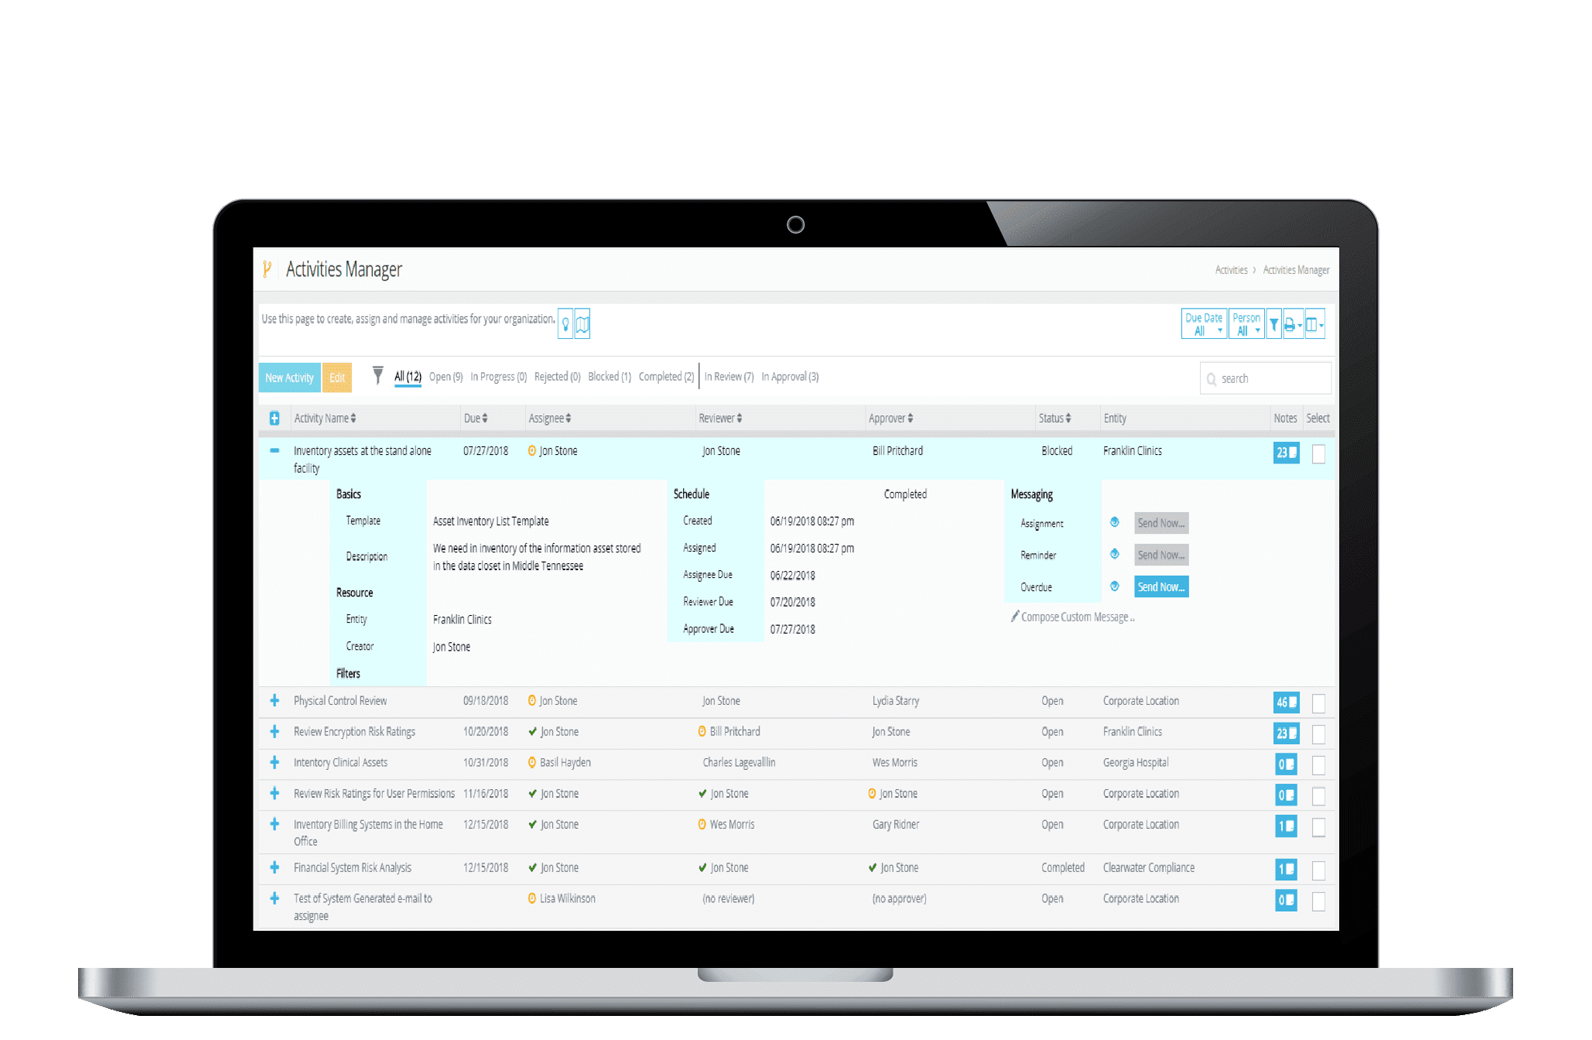 IRM Pro HIPAA Compliance Software - Activities Manager